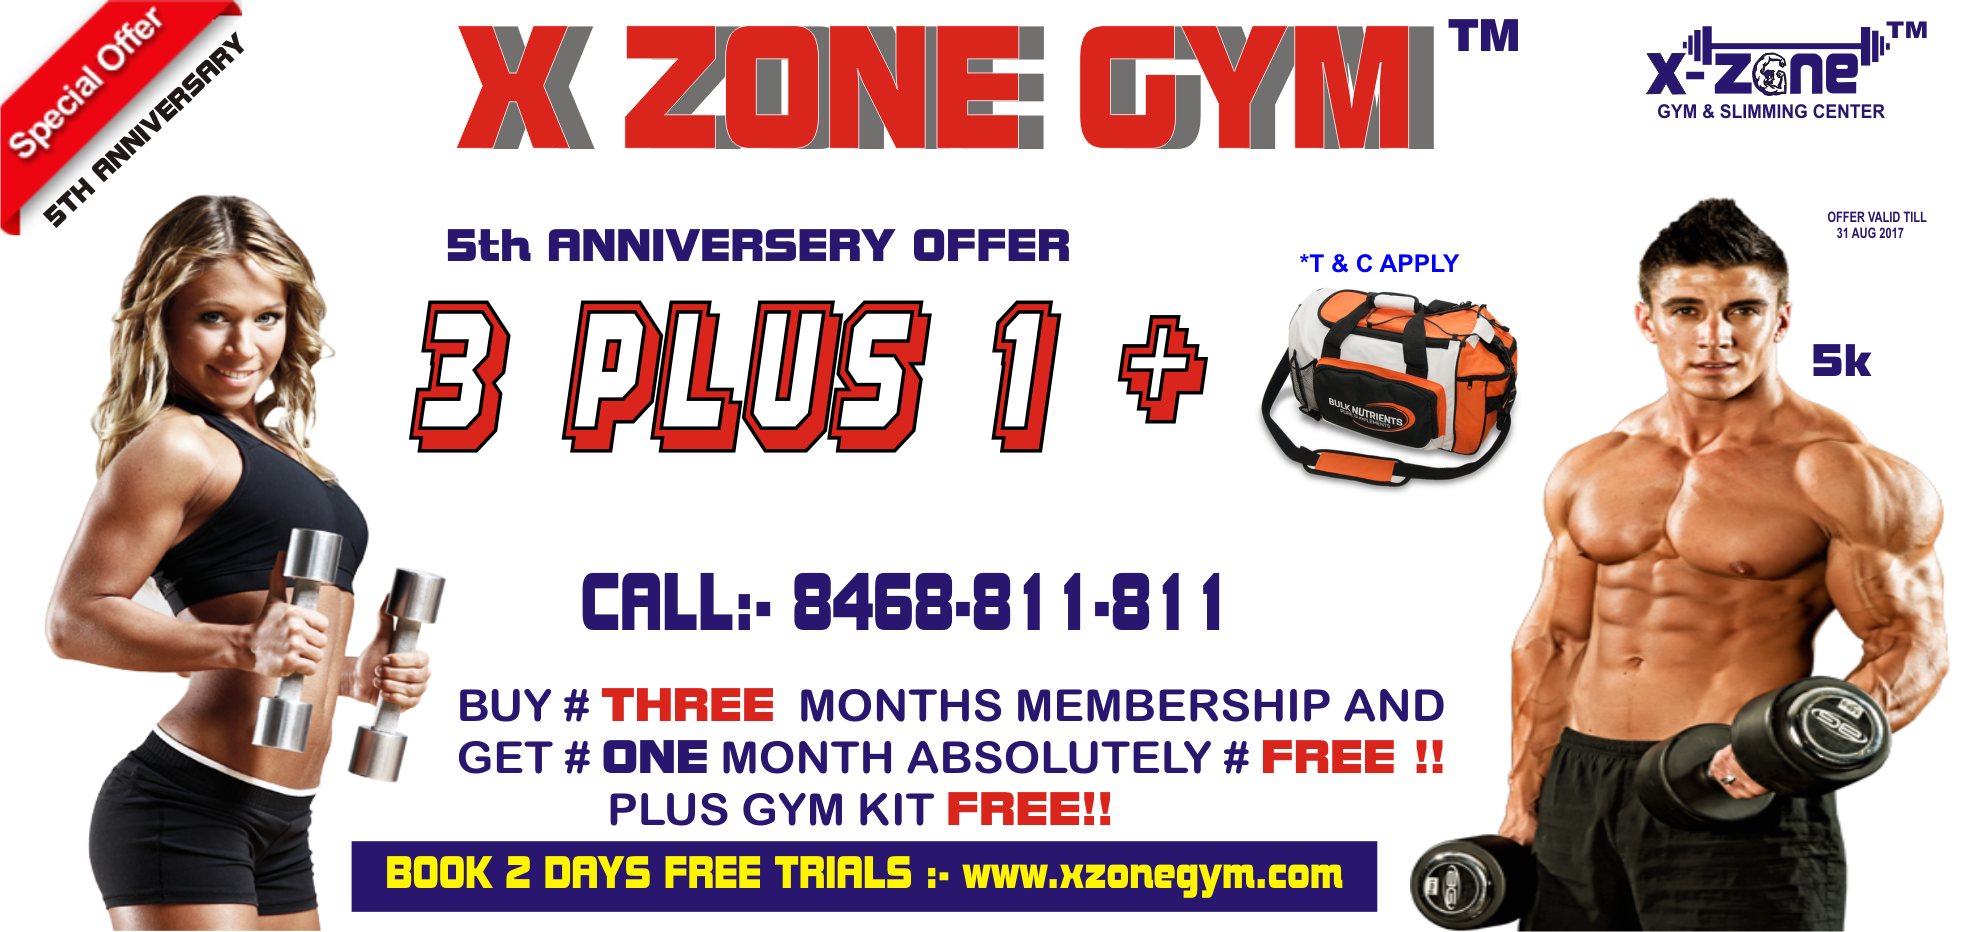 X ZONE GYM 5TH ANNIVERSARY OFFER